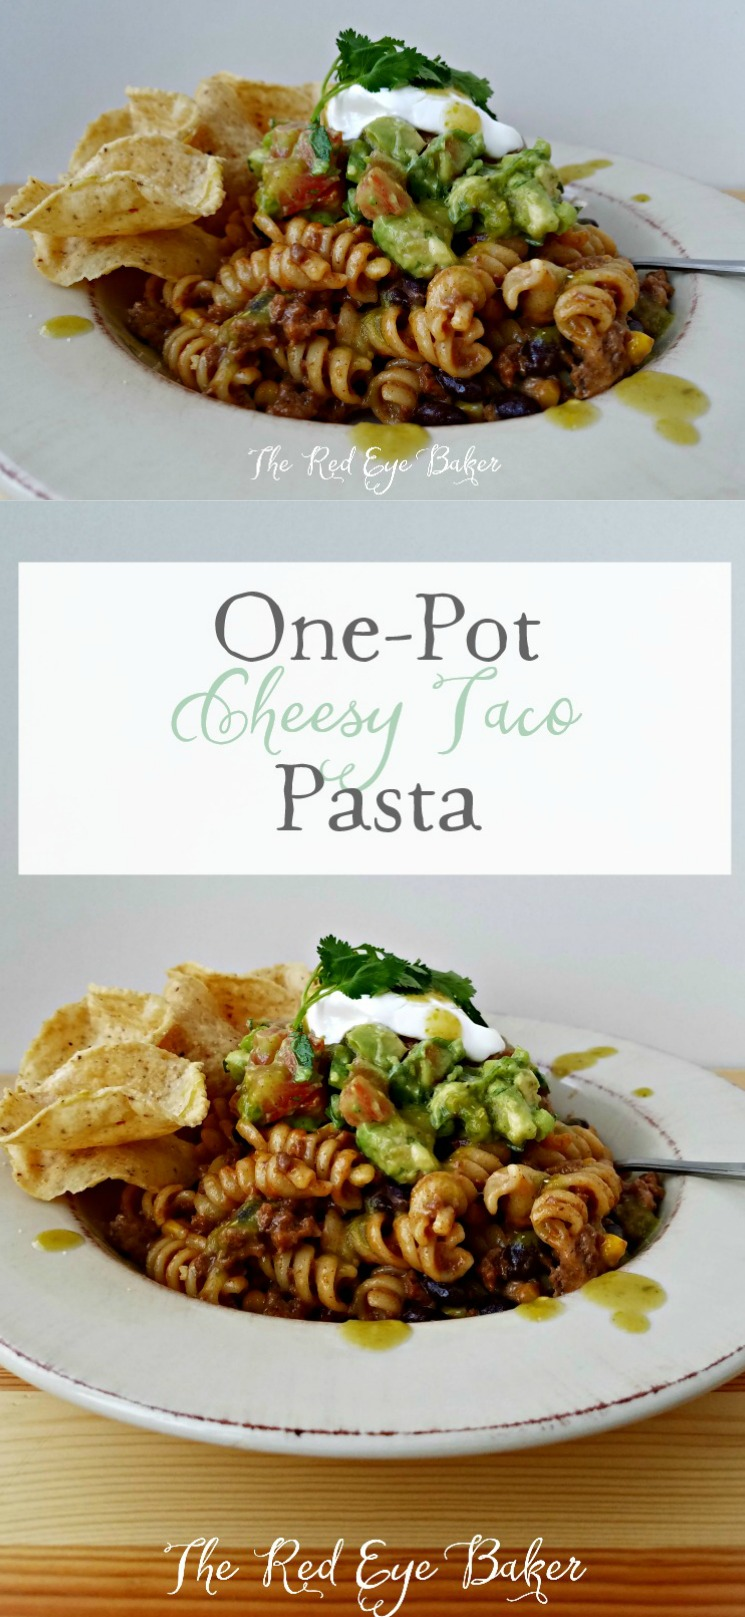 One-Pot Cheesy Taco Pasta | 30 minute meals are a mom's best friend! This One-Pot Cheesy Taco Pasta is an simple and tasty way to get the family fed any day of the week.